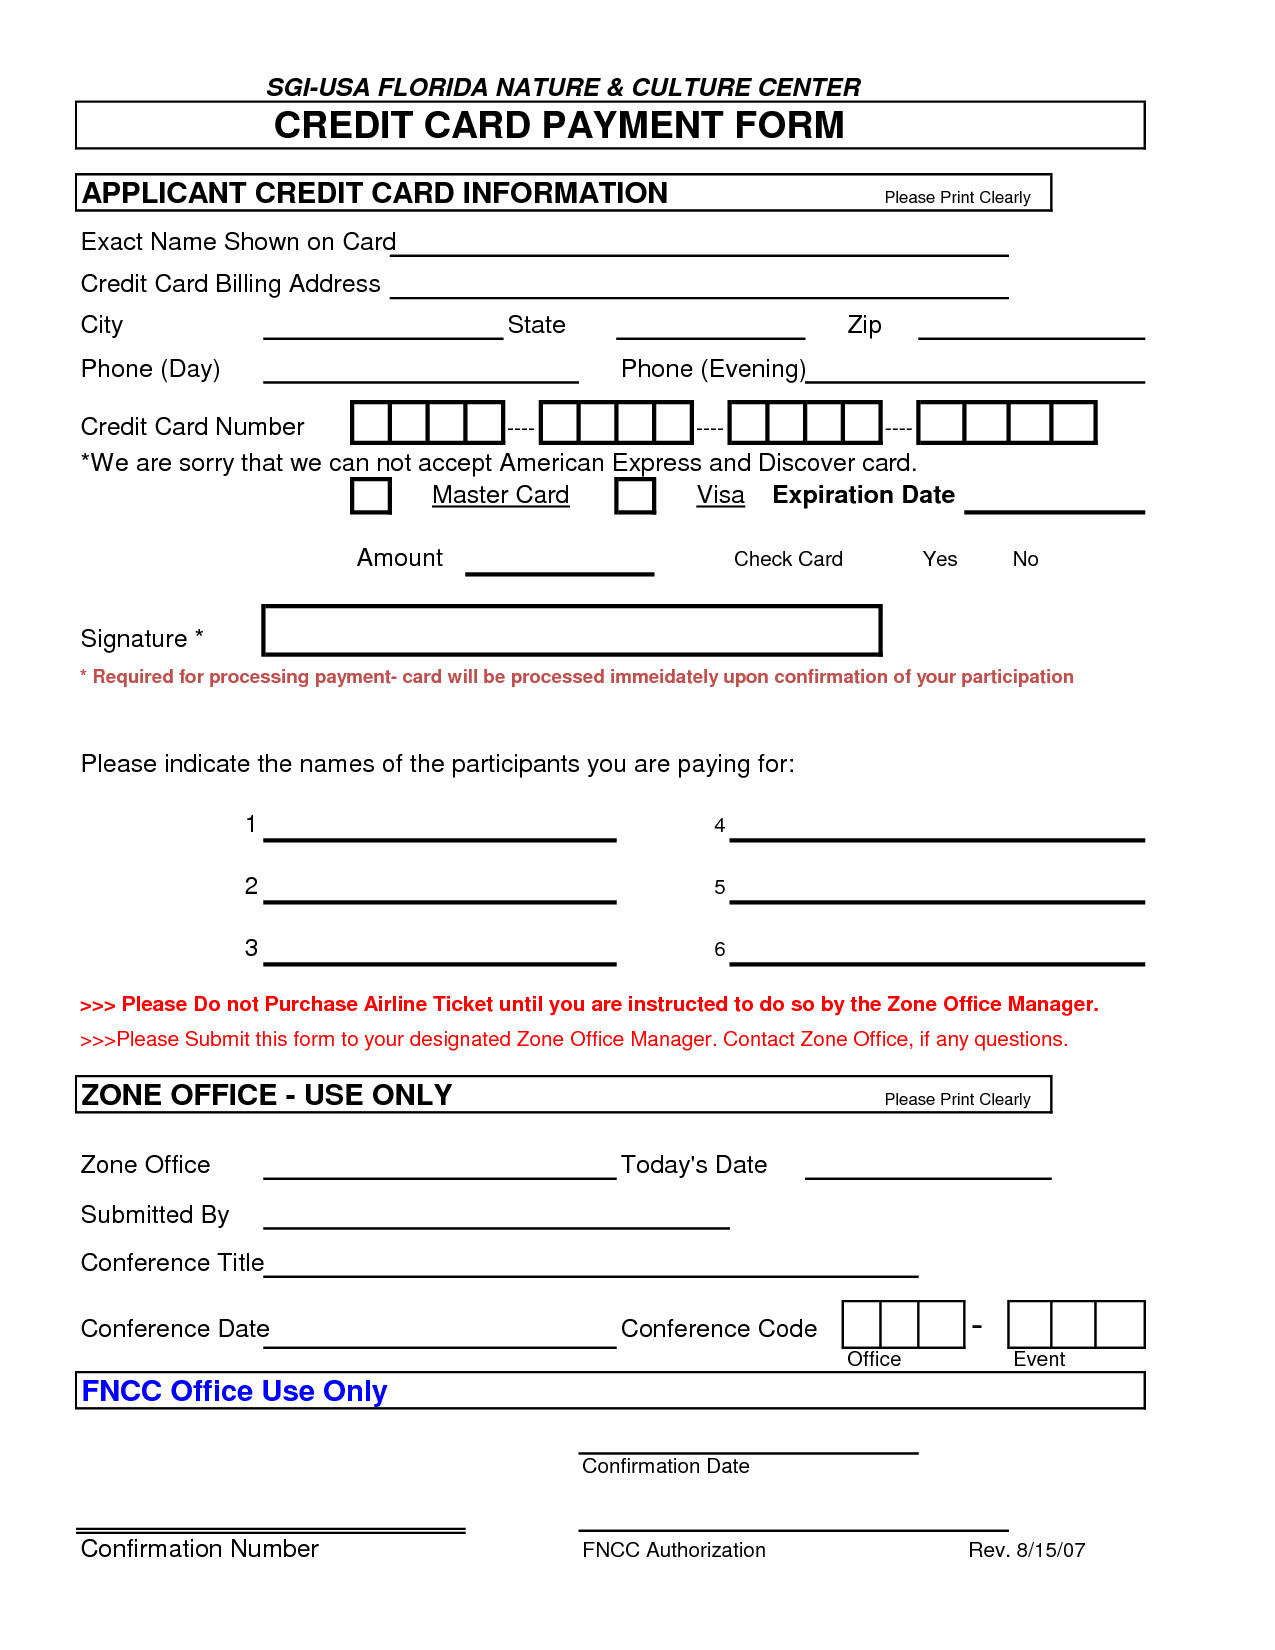 Credit Card Payment form Template 5 Credit Card Authorization form Templates formats